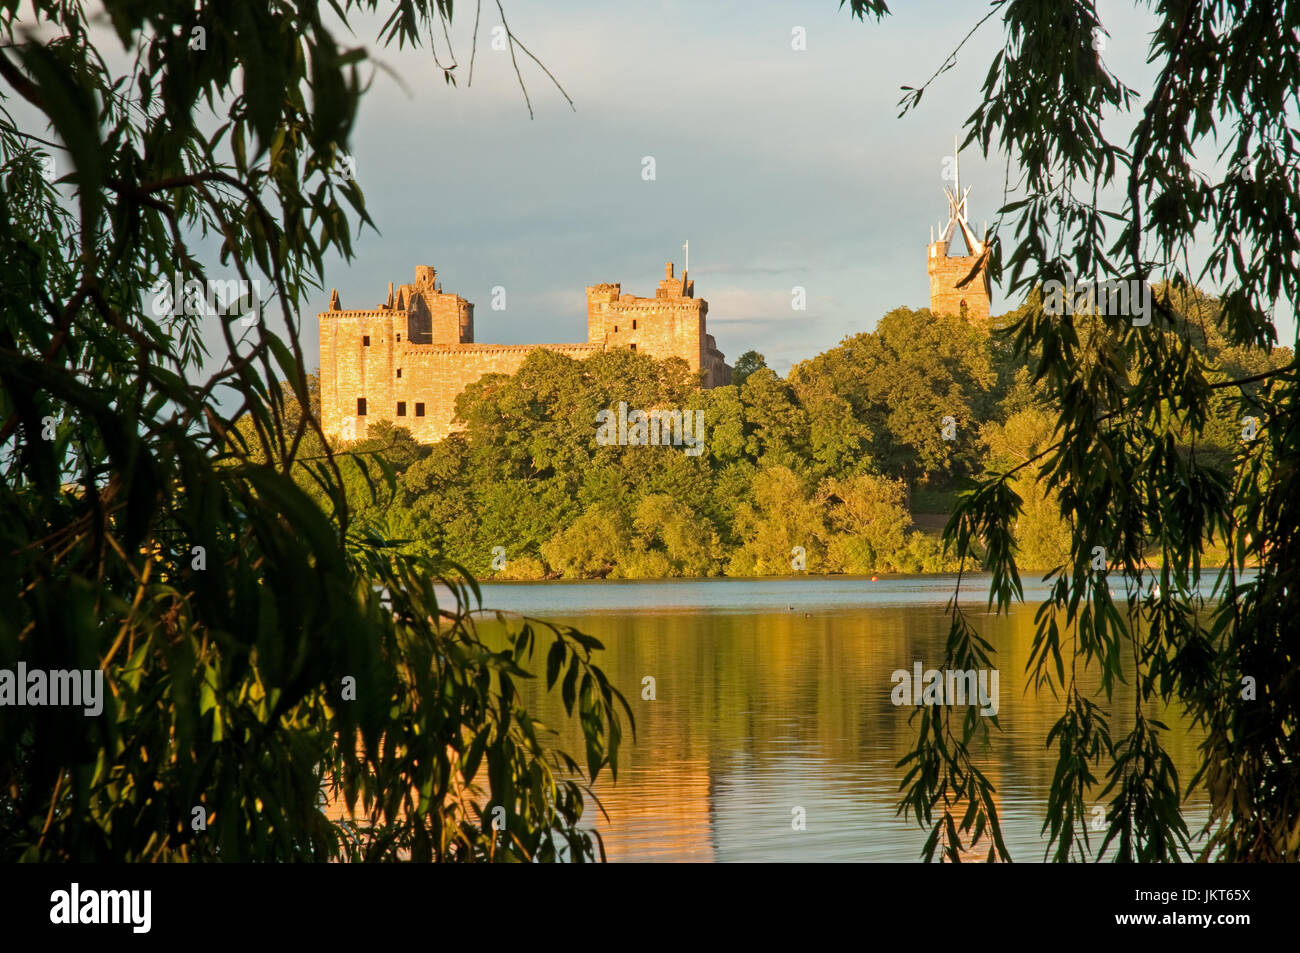 Linlithgow Palace framed by Weeping Willows Stock Photo